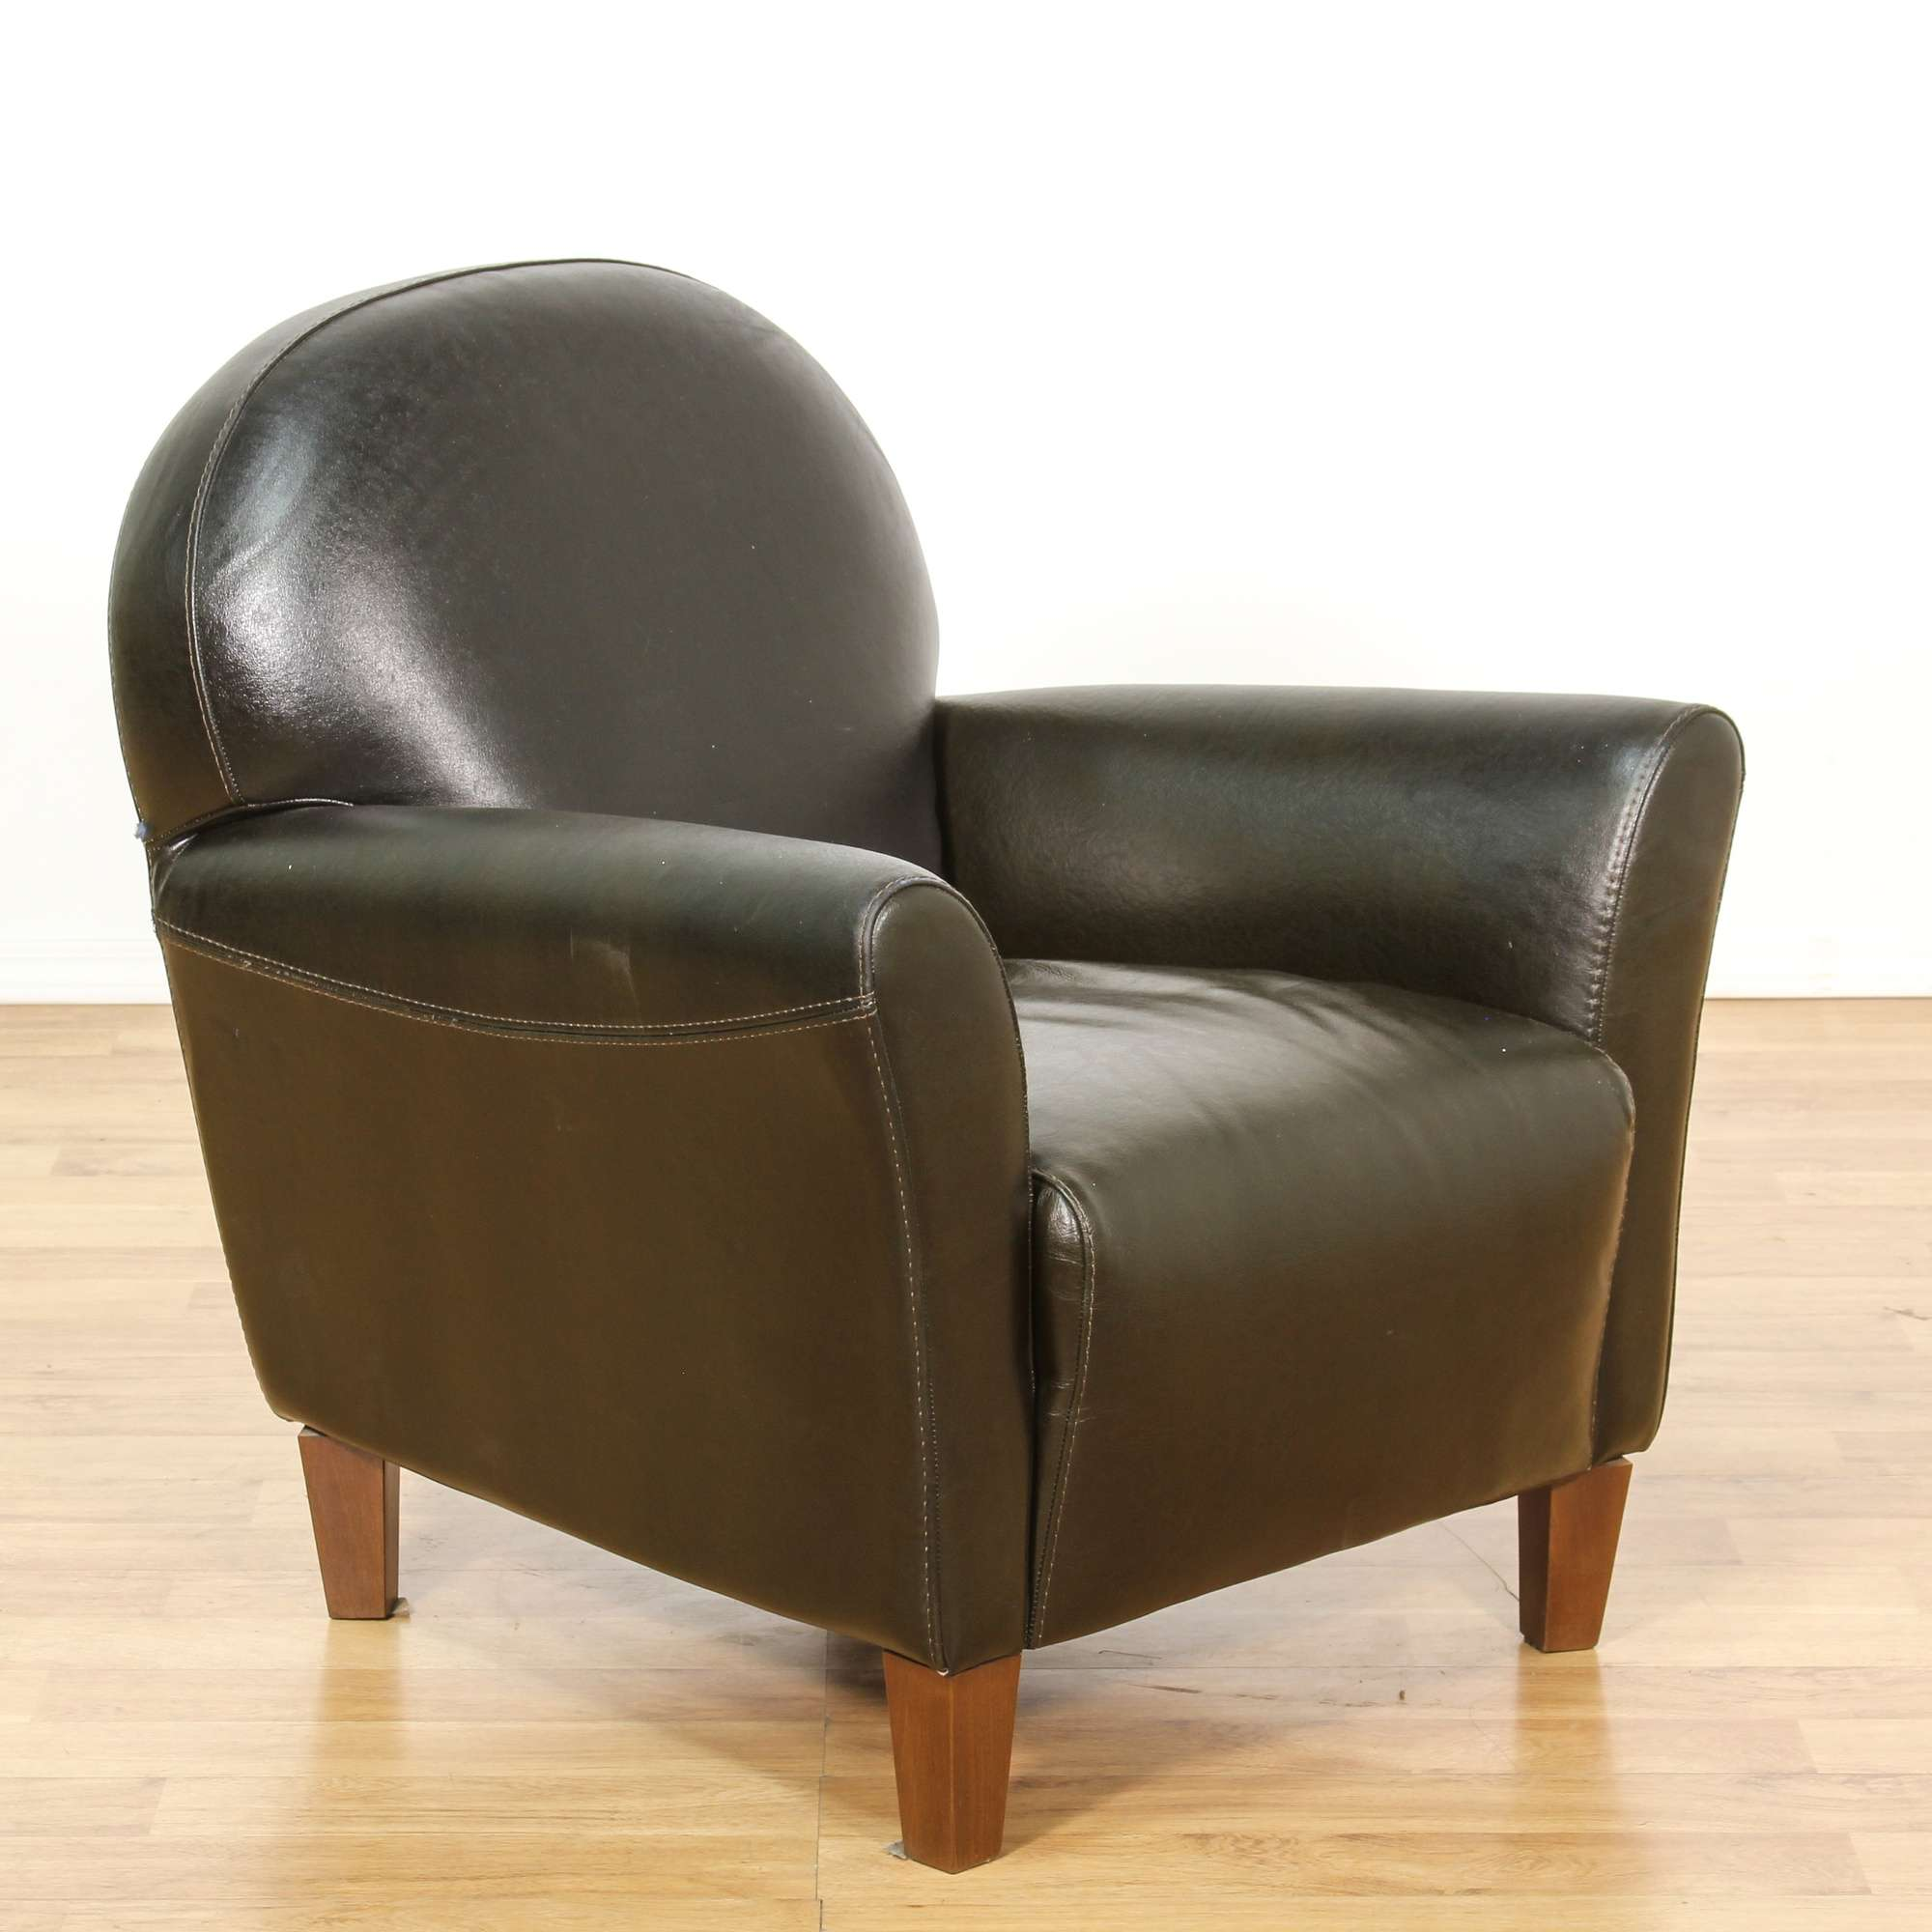 zoom chain leather global page by hover ch category to index product furniture black id bl name chair